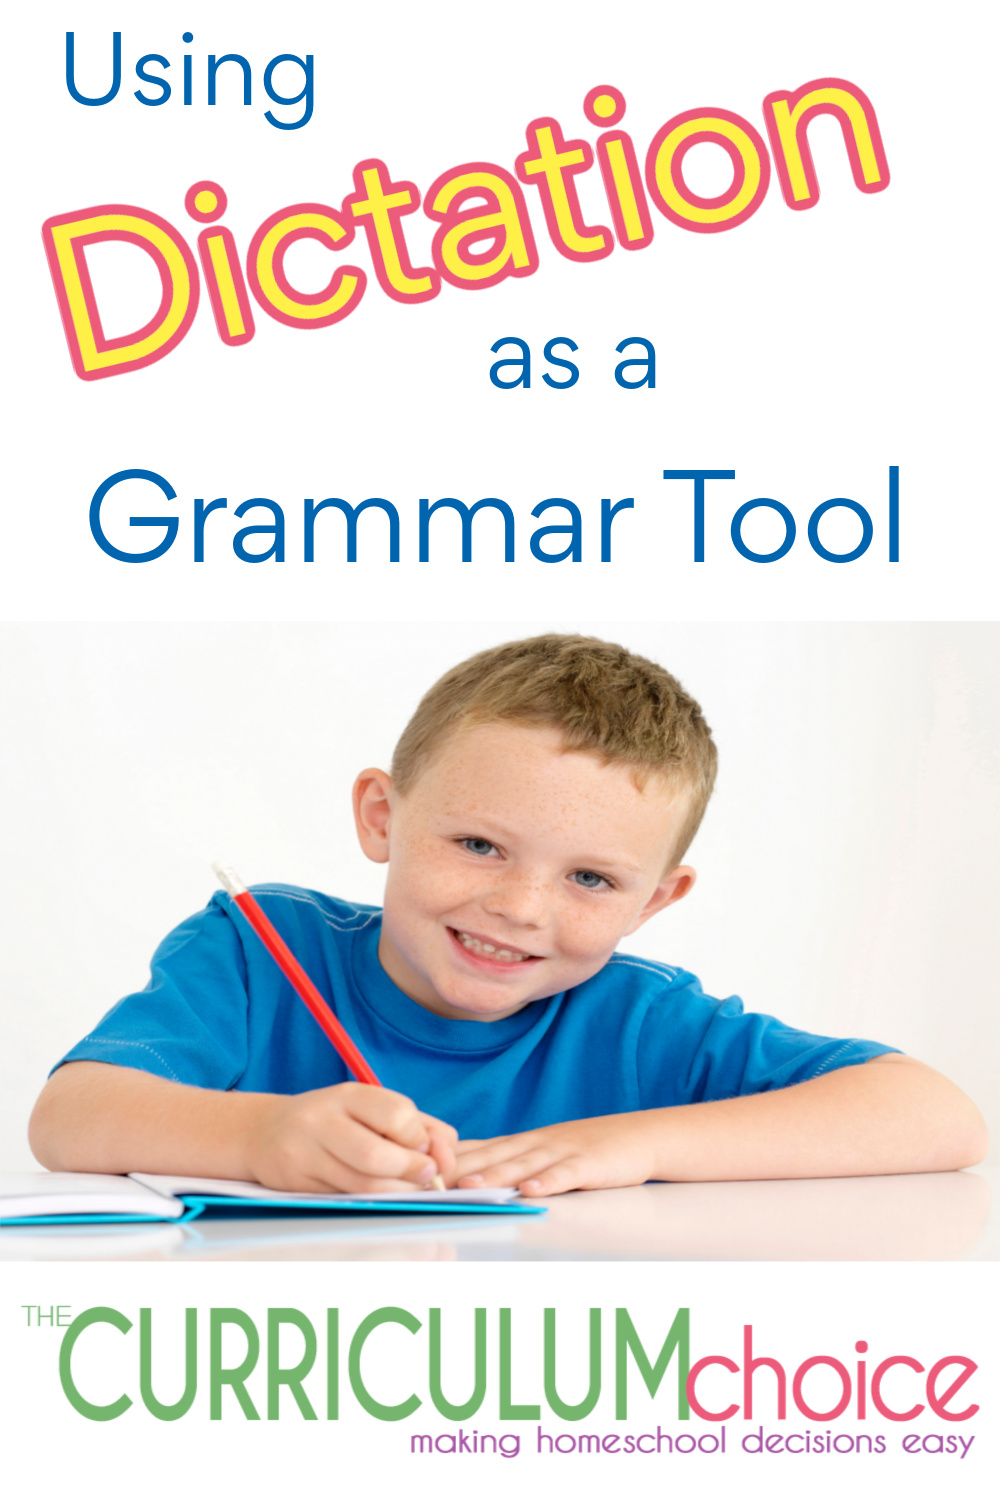 Using Dictation as a Grammar Tool is an effective and natural way to teach things like handwriting, spelling, vocabulary, sentence structure, and more.